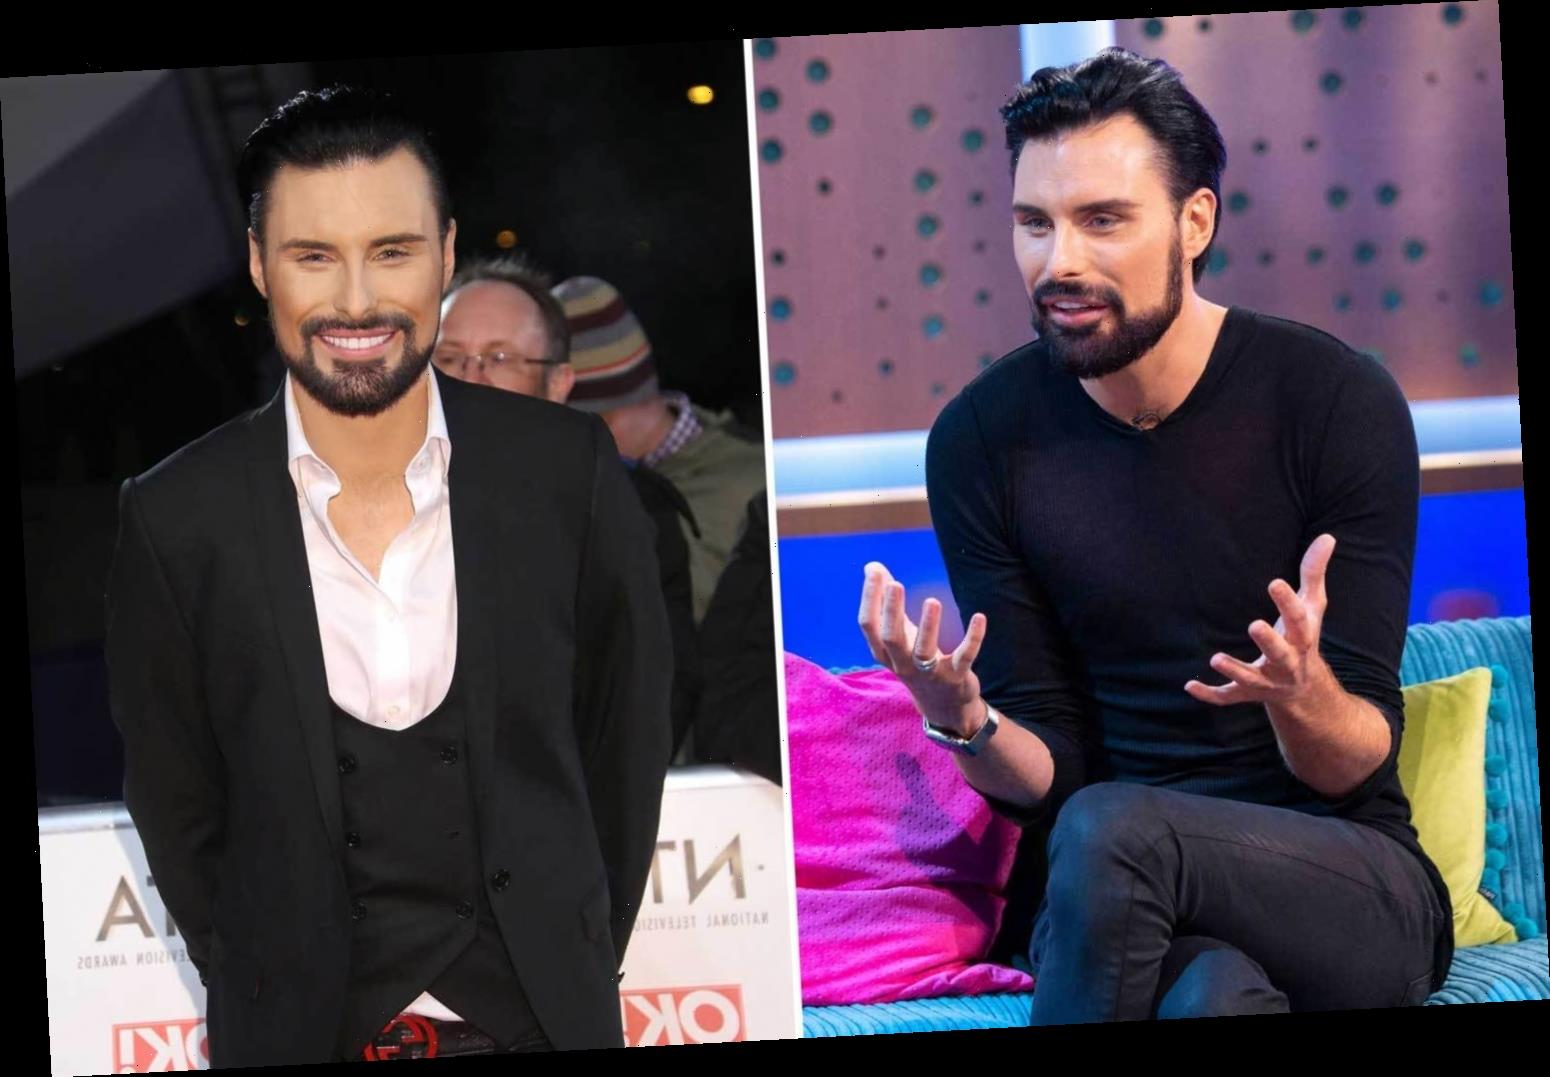 Rylan Clark-Neal reveals he's taking a break from social media saying constant trolling 'enrages' him